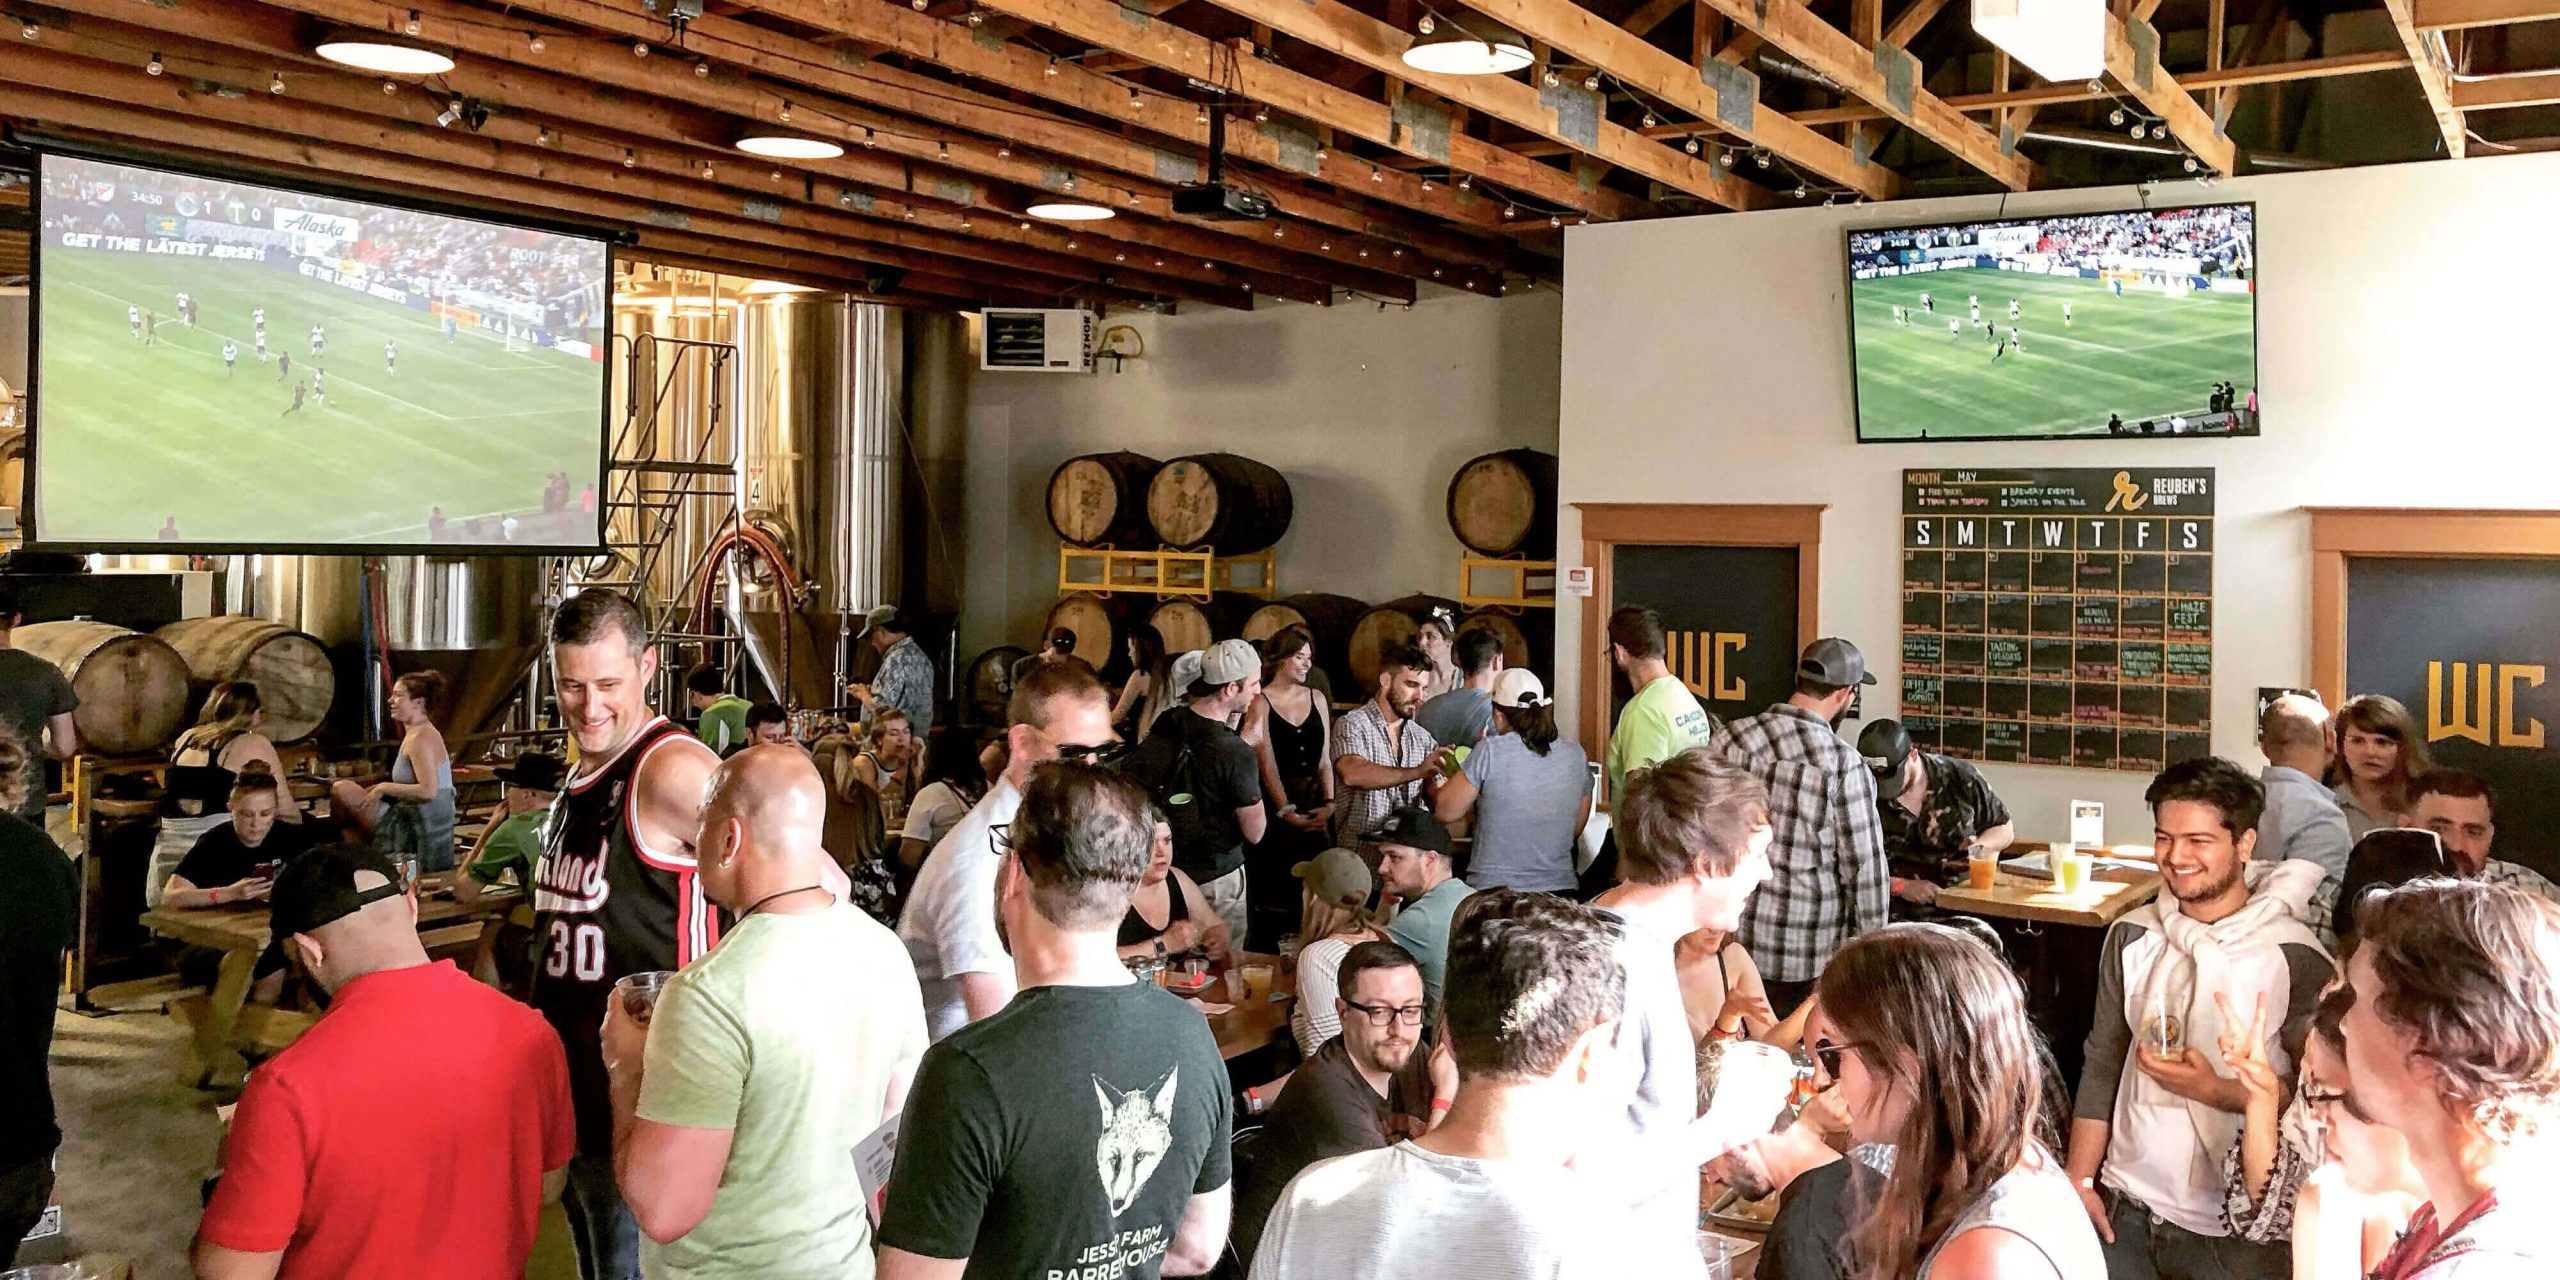 Inside the Reuben's Brews taproom at The Brewtap location in Seattle, Washington